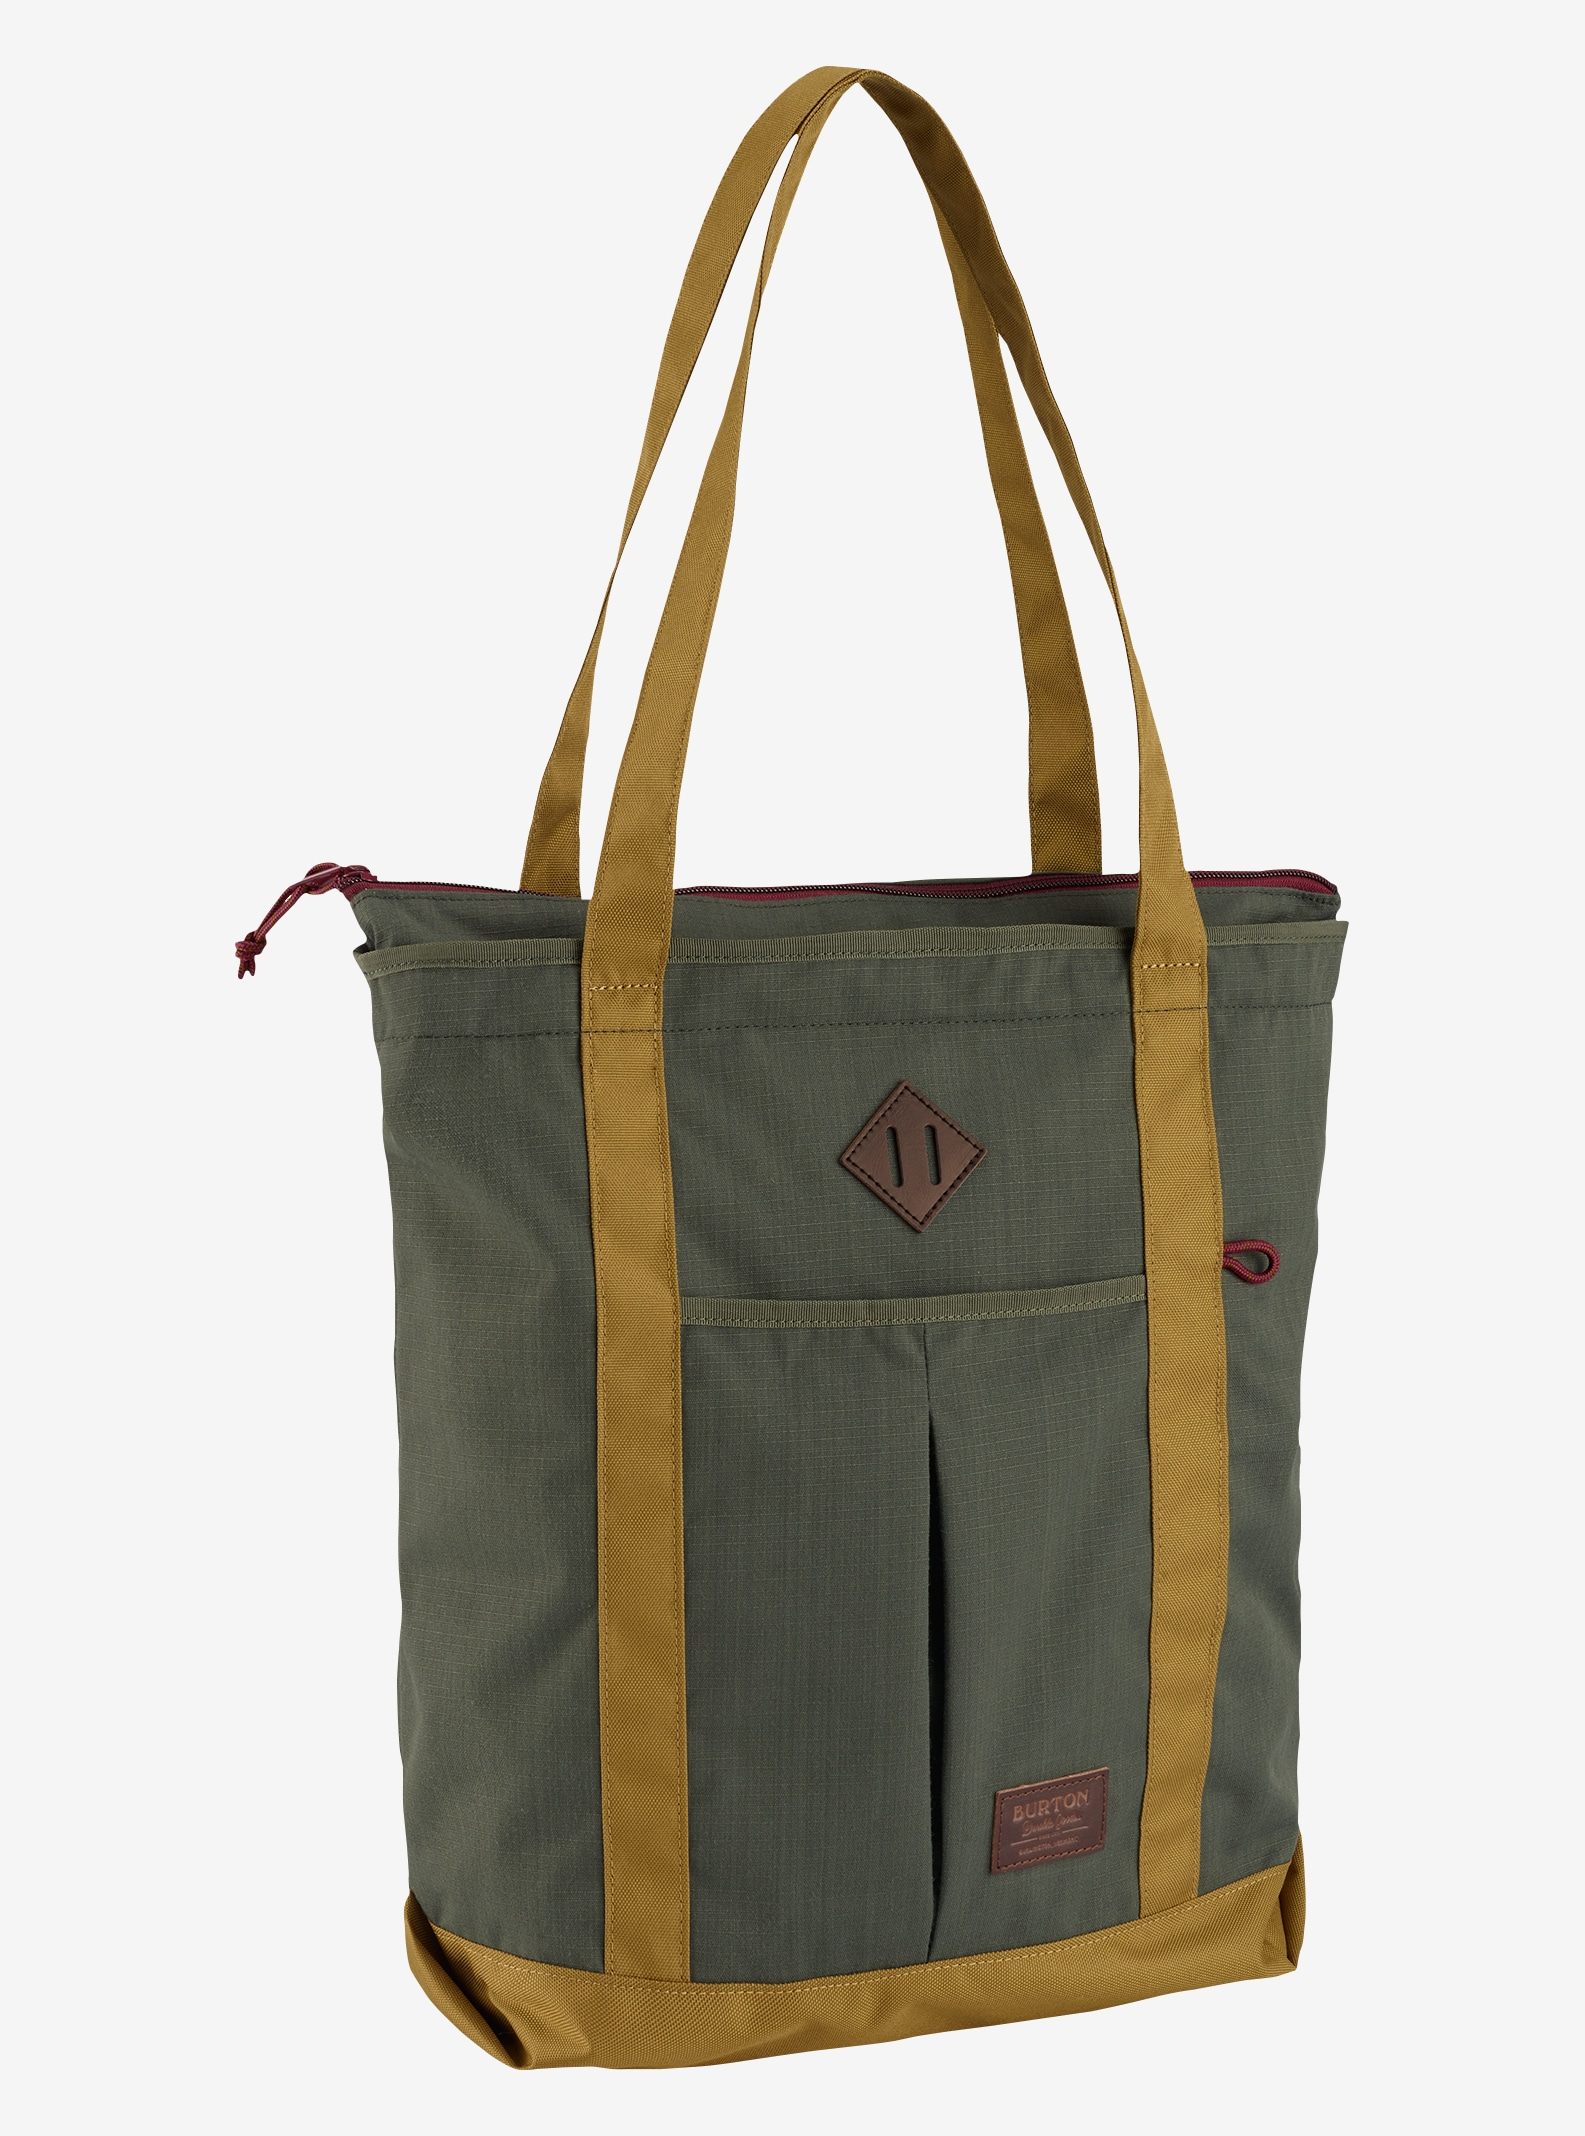 Burton NS Zip Crate Tote shown in Forest Night Ripstop